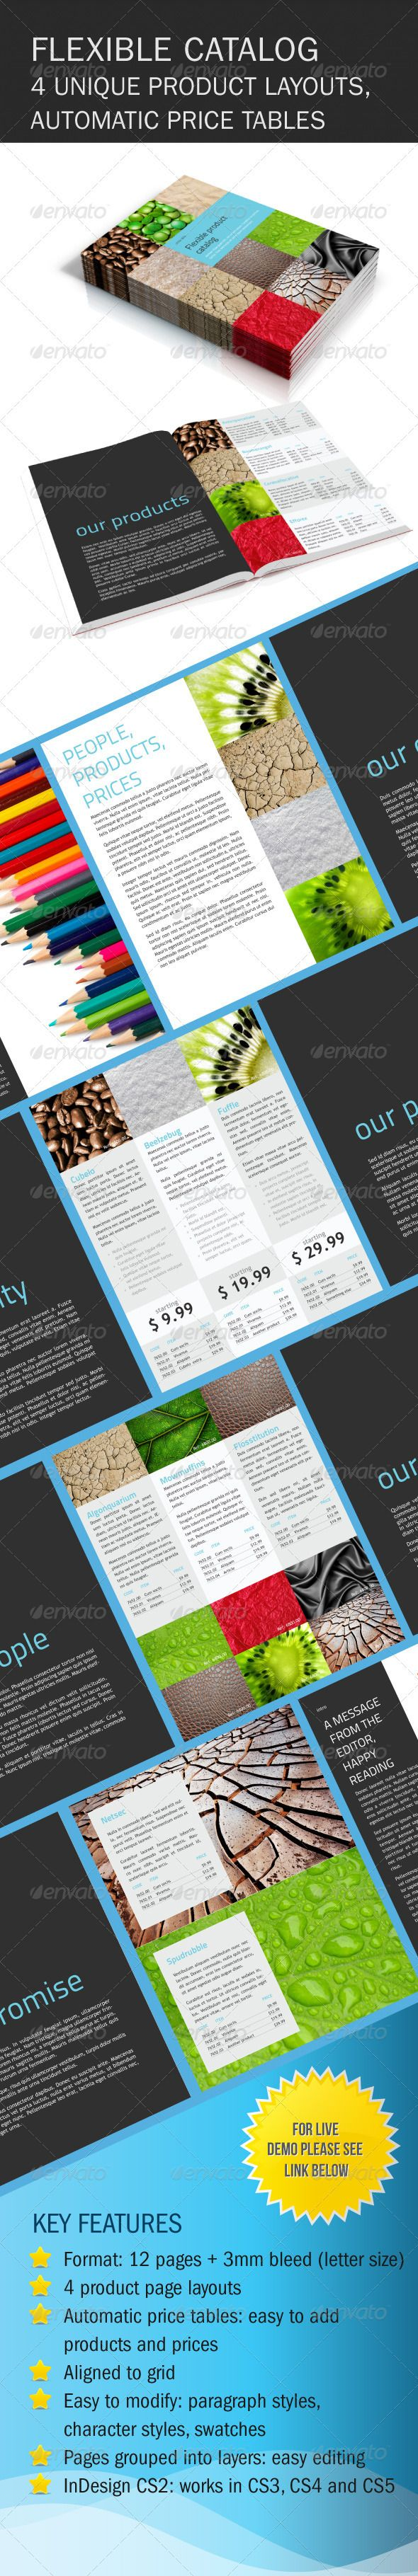 product catalog half fold brochure template – paragraph styles character styles swatches bleed – everything for easy editing and easy printing 12